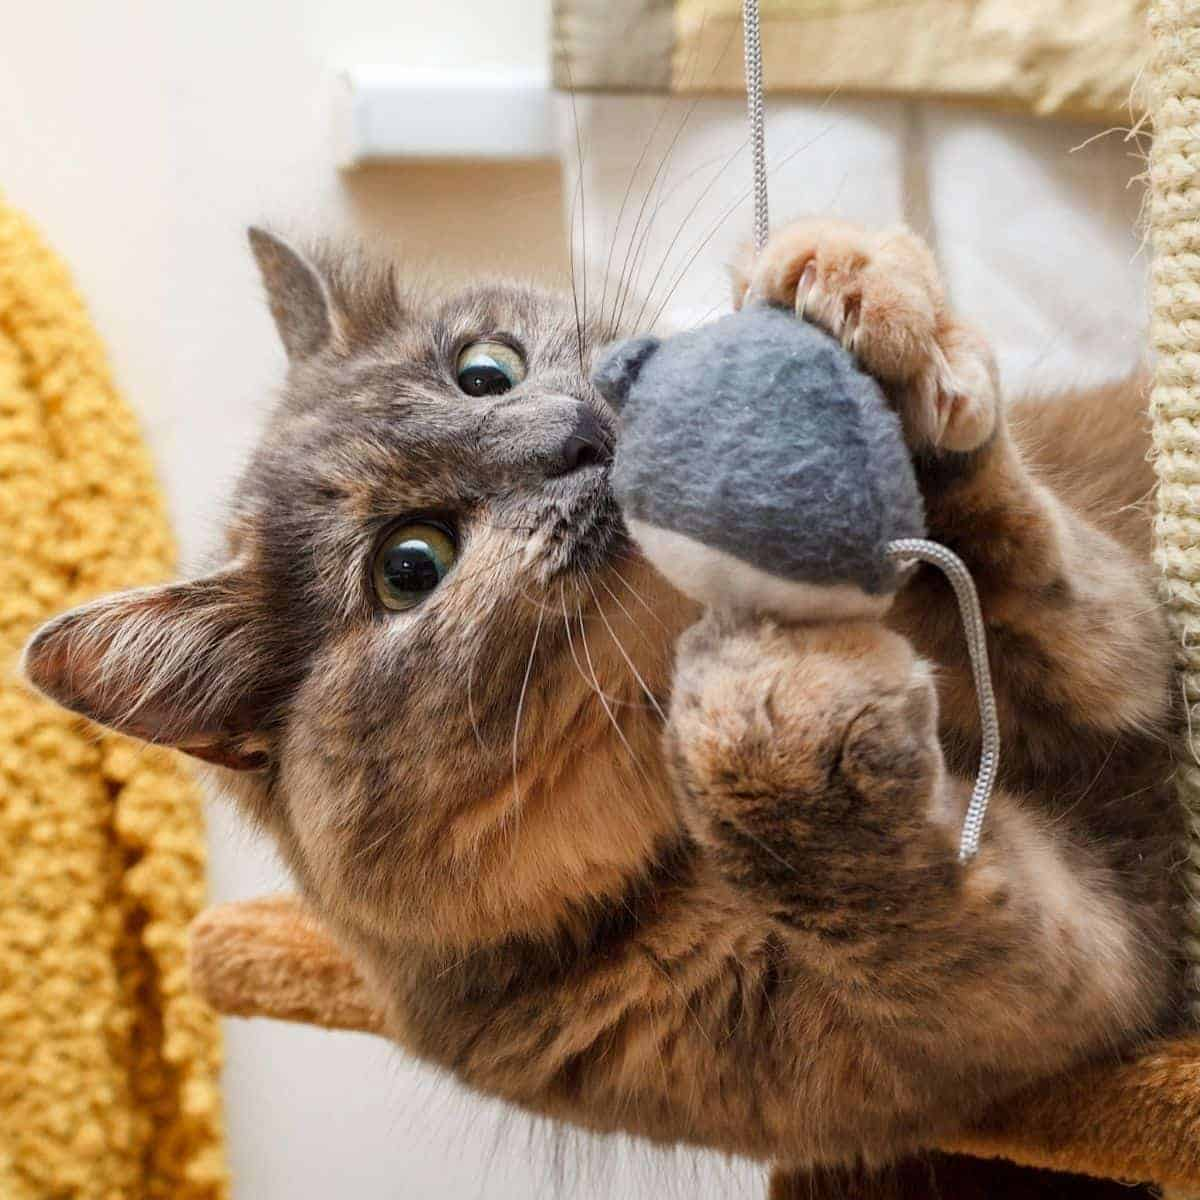 Cat playing with a hanging ball.